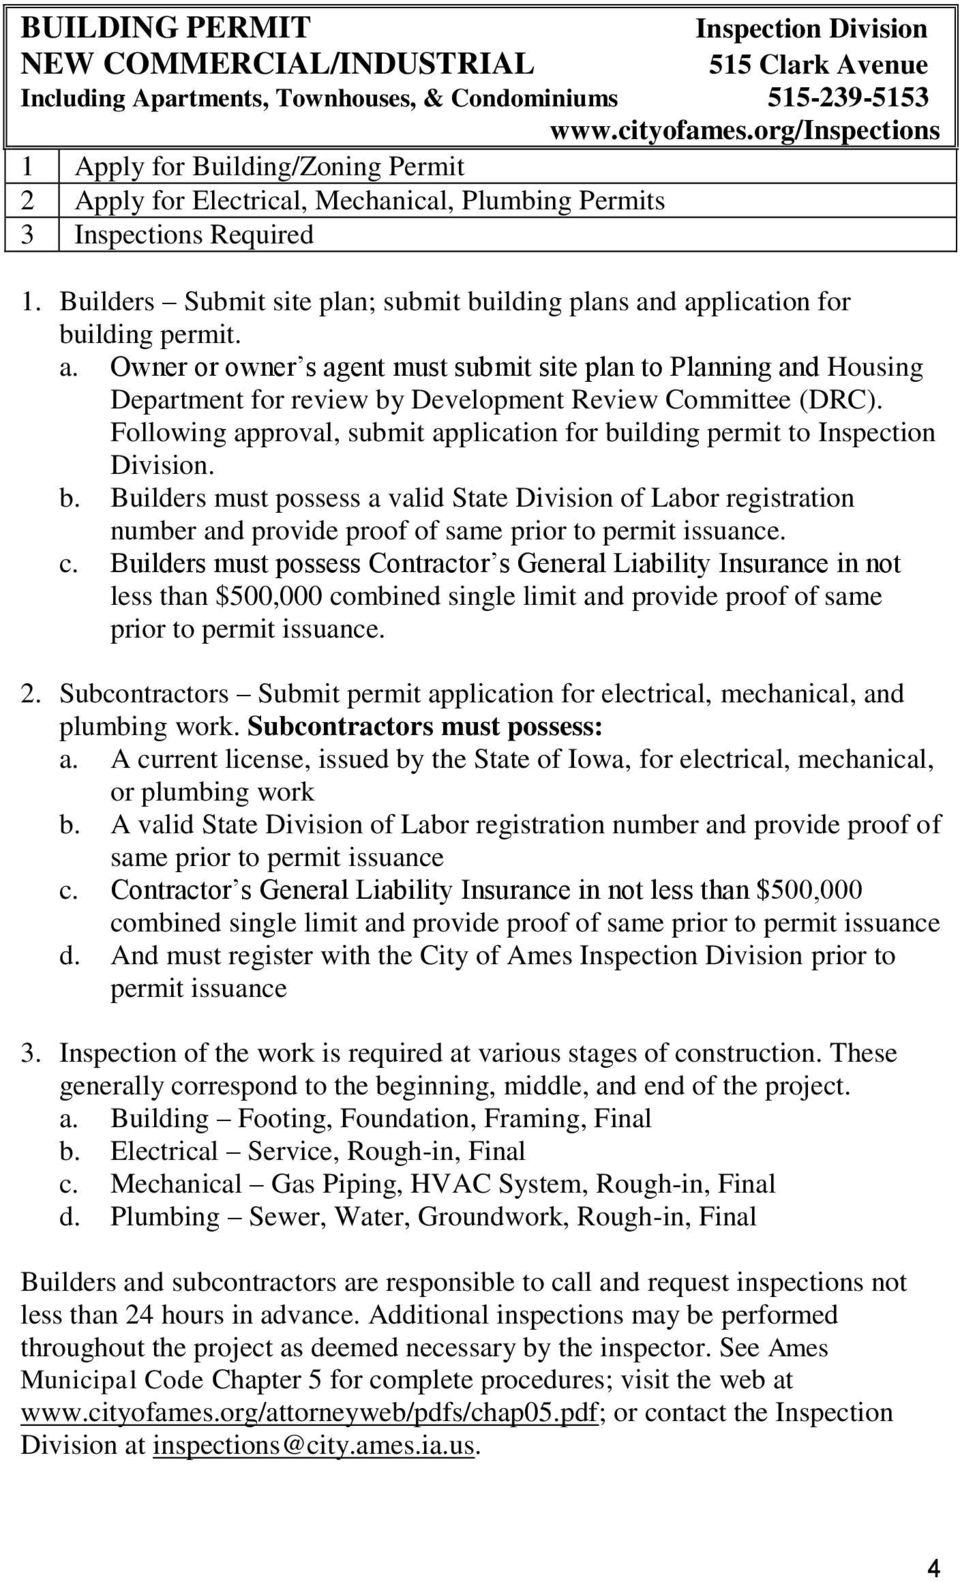 Builders Submit site plan; submit building plans and application for building permit. a. Owner or owner s agent must submit site plan to Planning and Housing Department for review by Development Review Committee (DRC).